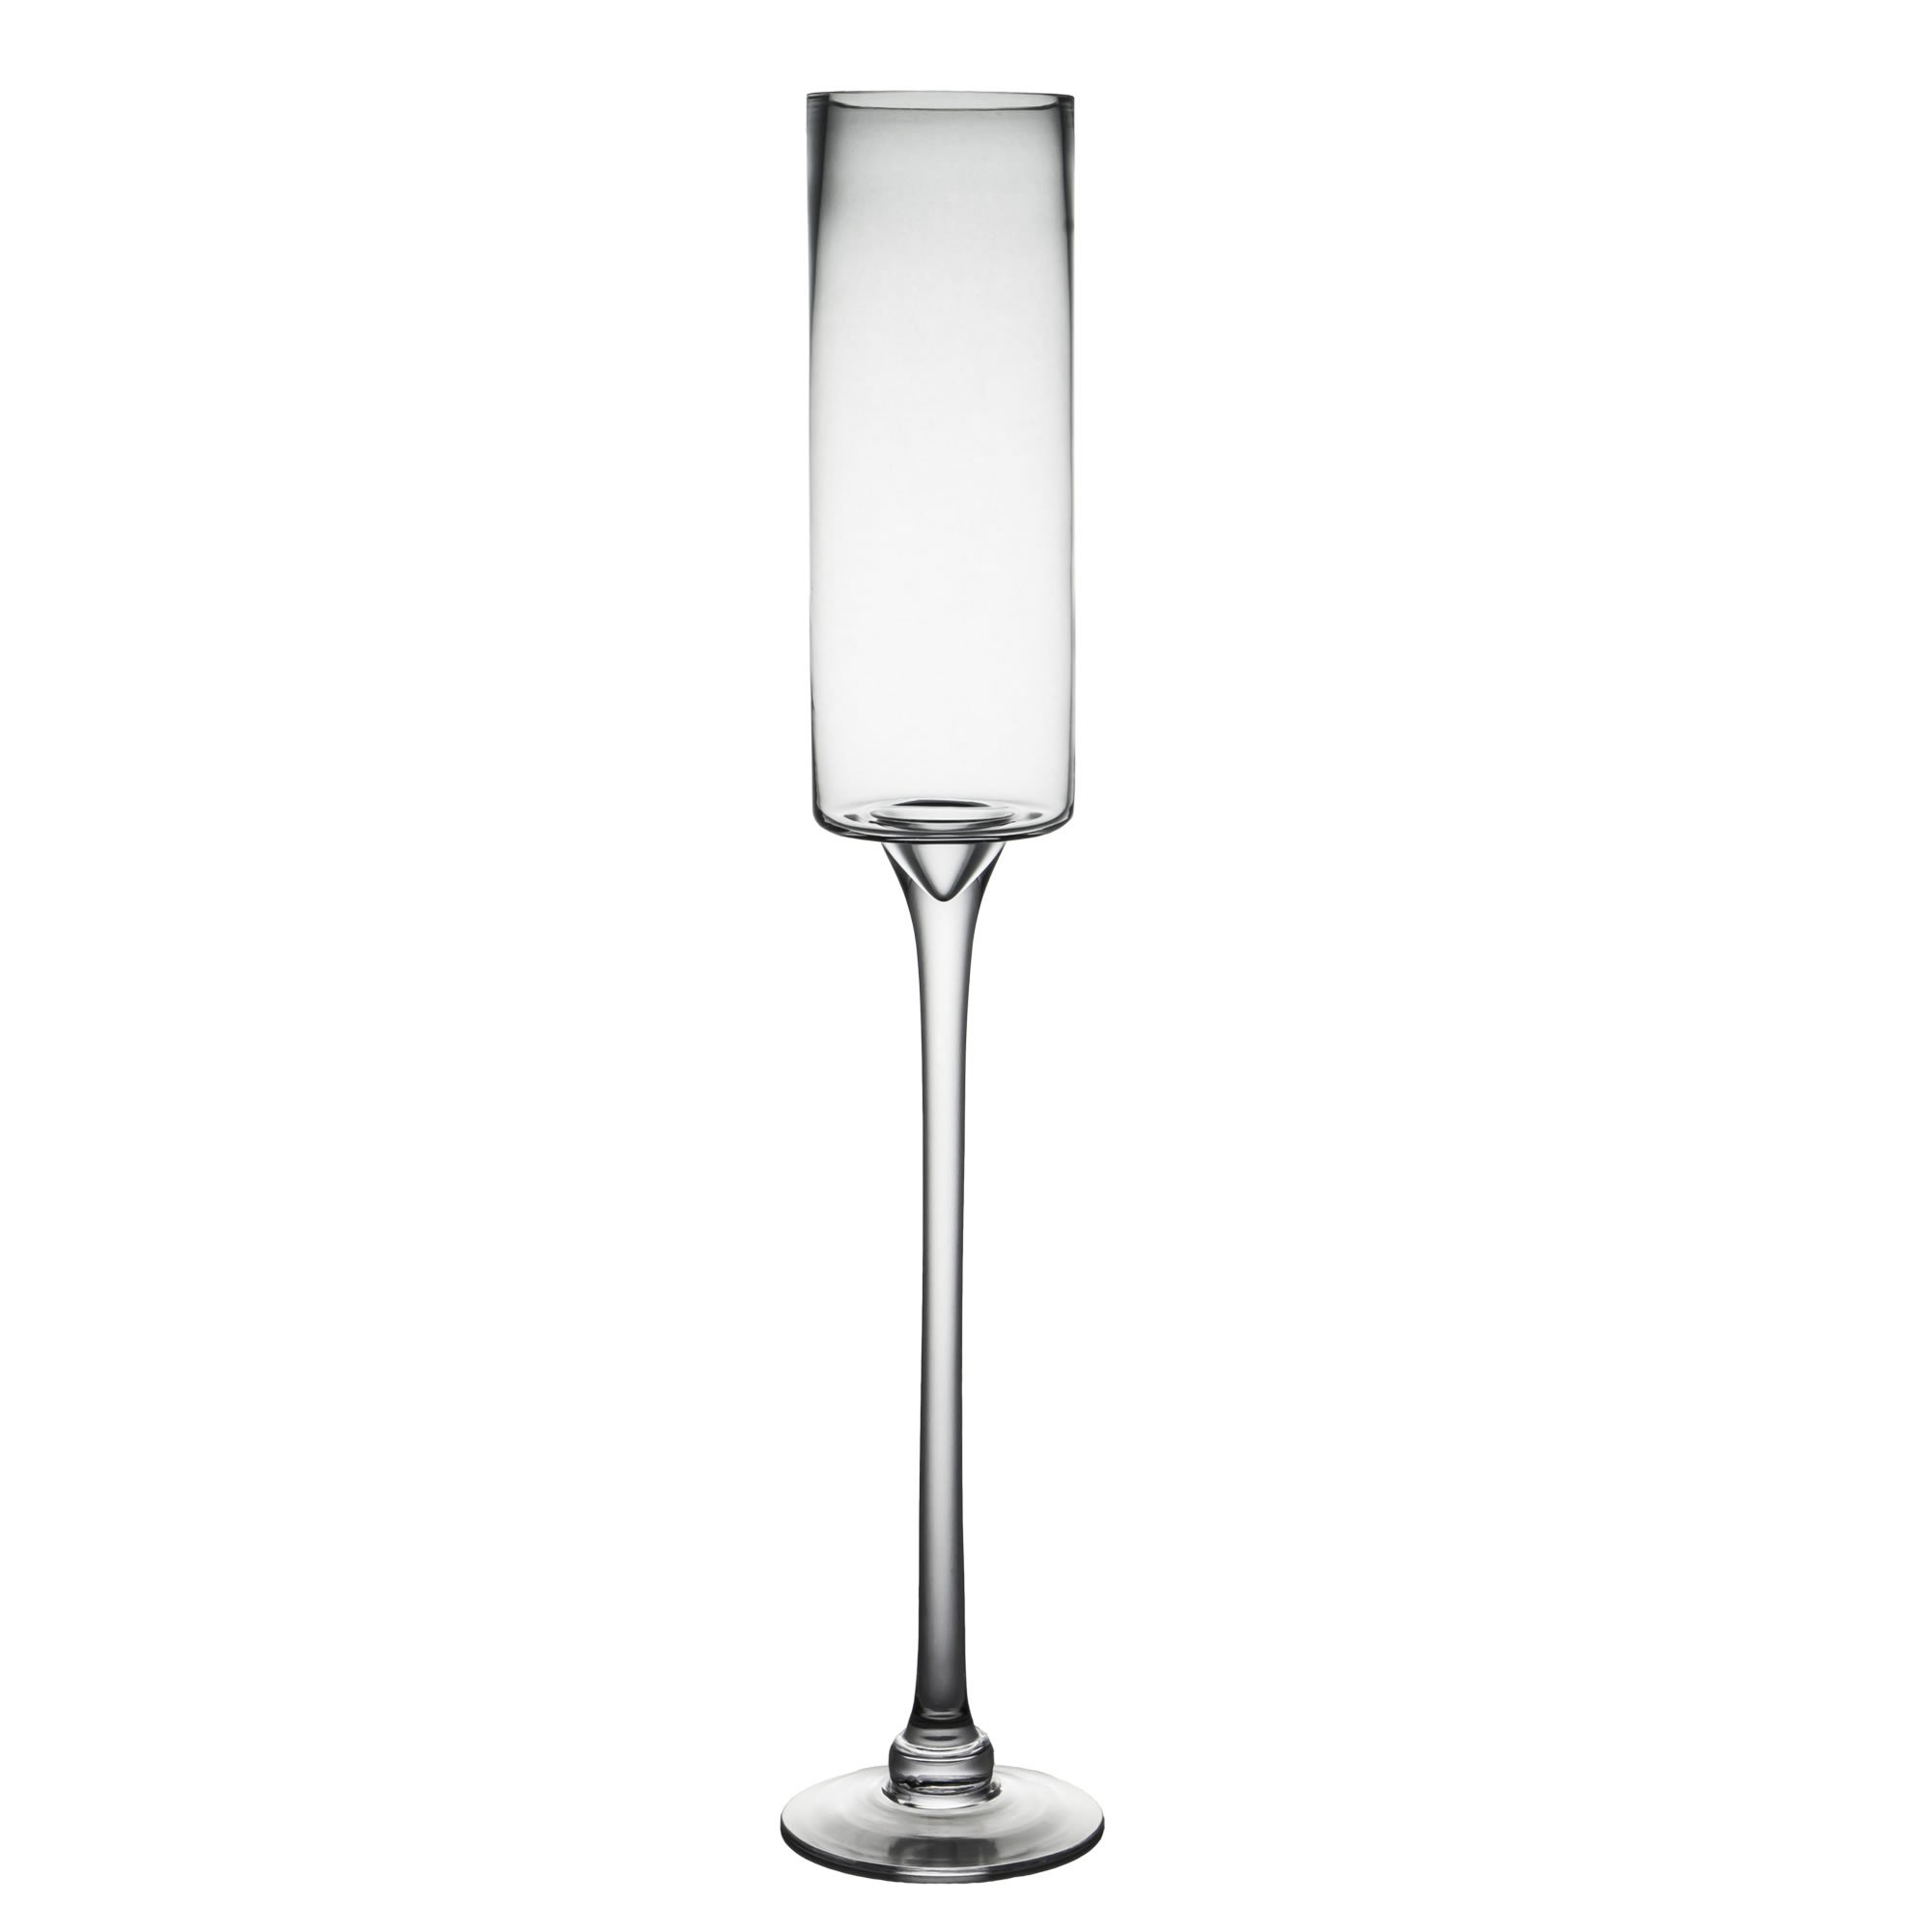 CYS EXCEL Long Stem Candle Holder, Open D:3.5'' H:24'', Clear